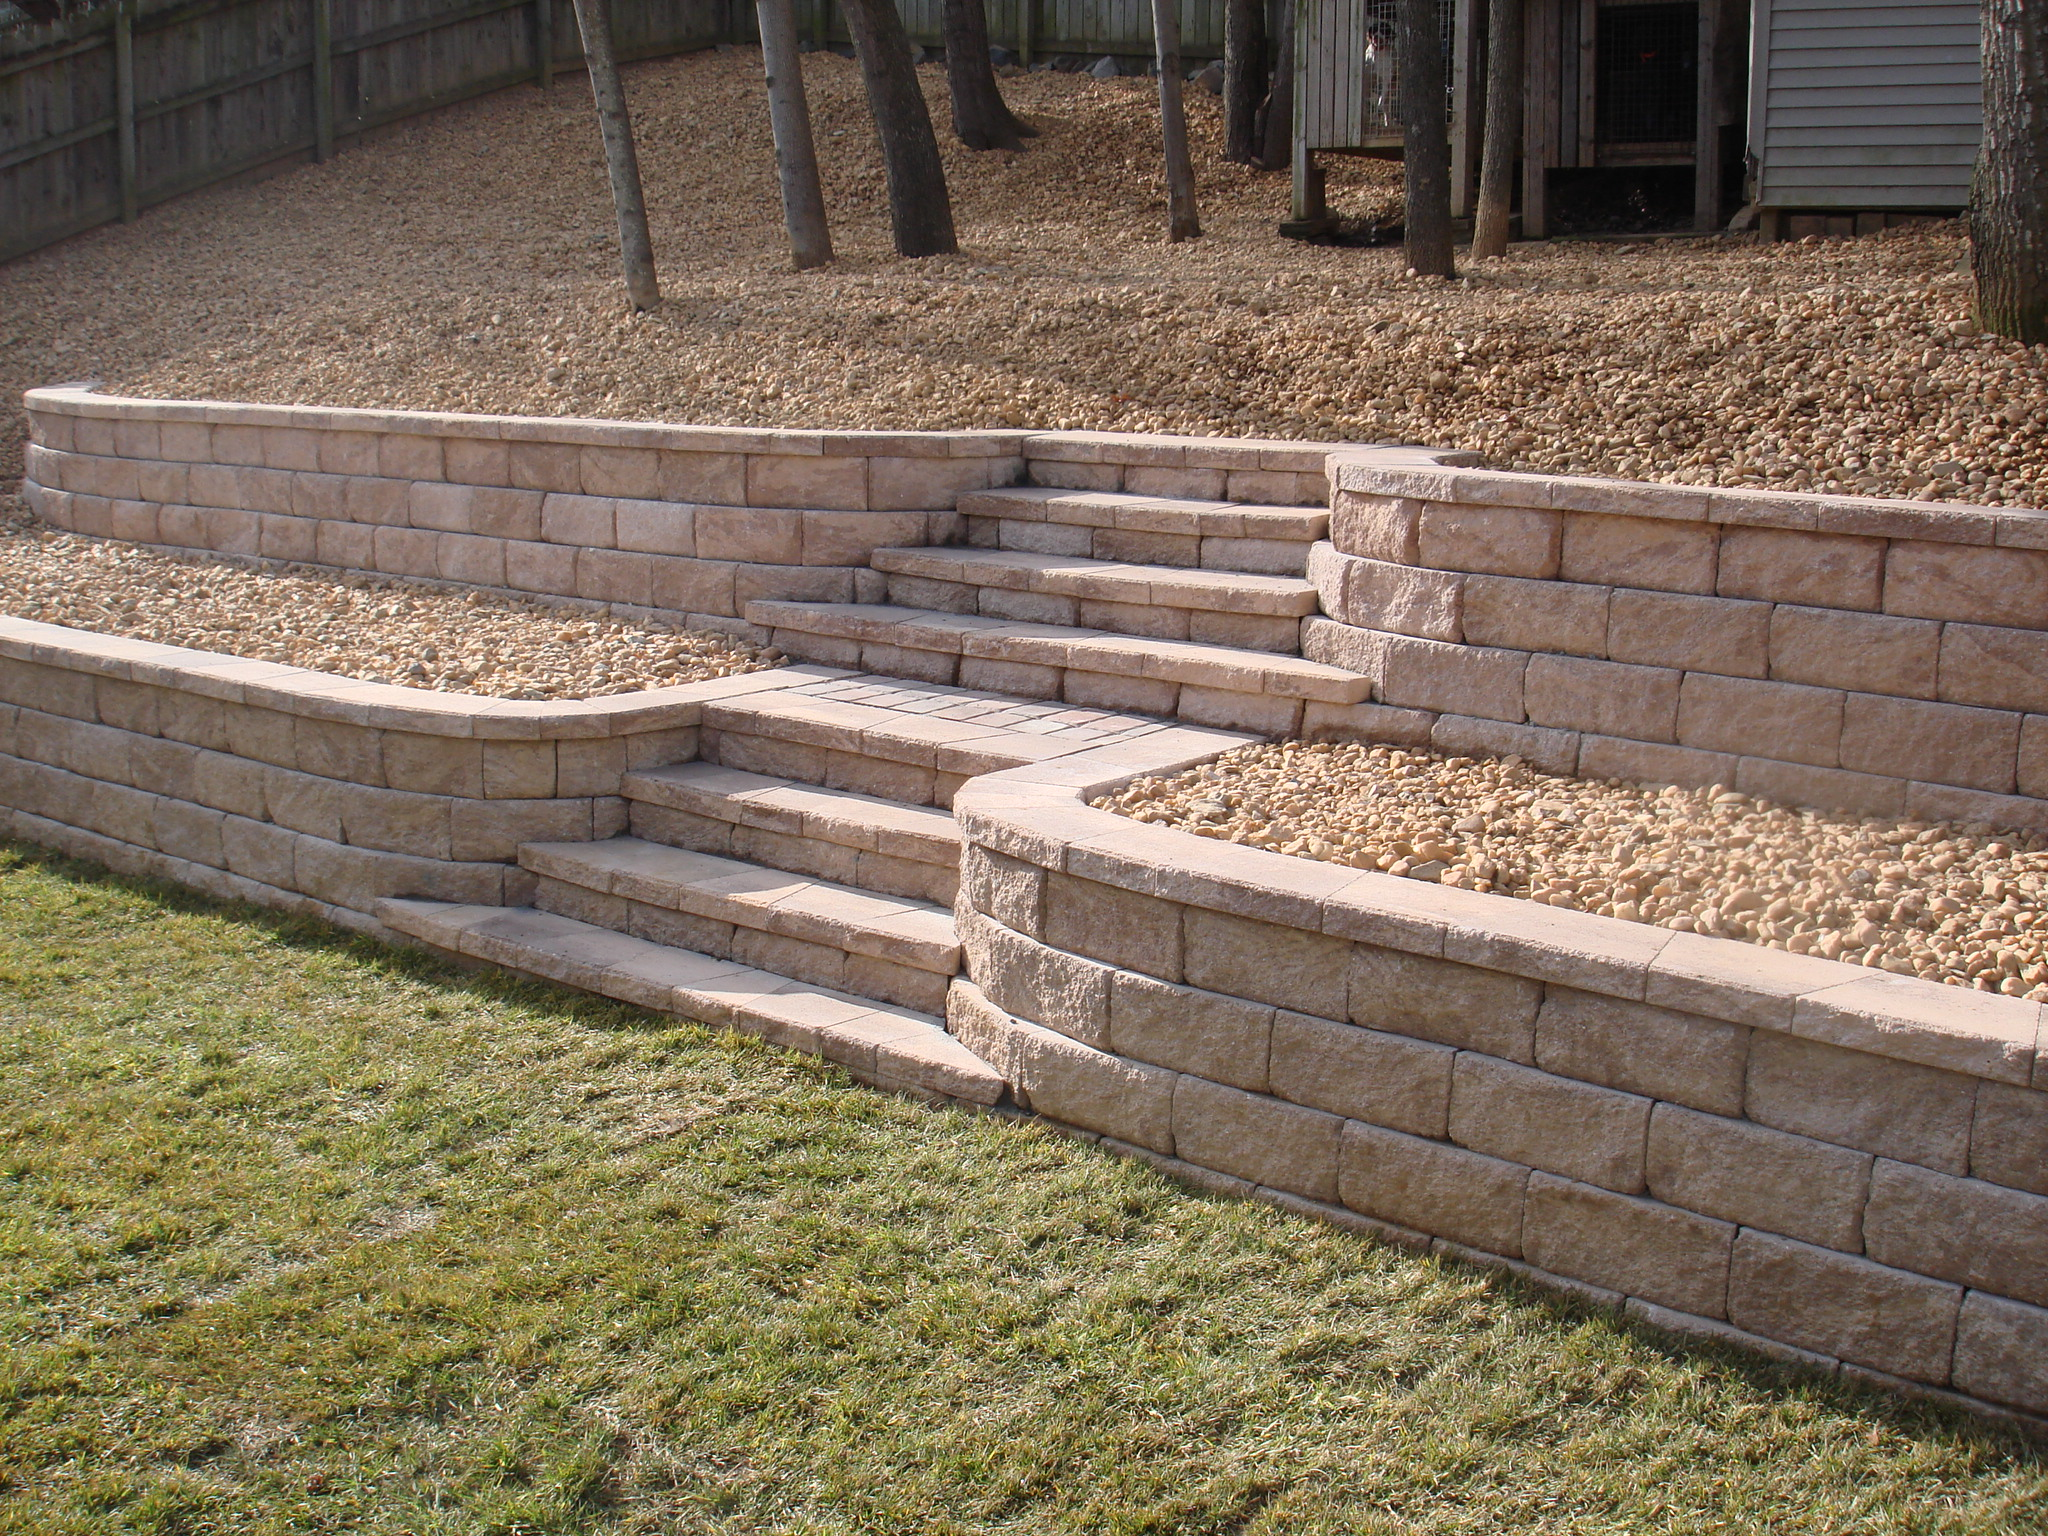 Retaining wall with stone steps fredericksburg virginia for Landscape blocks